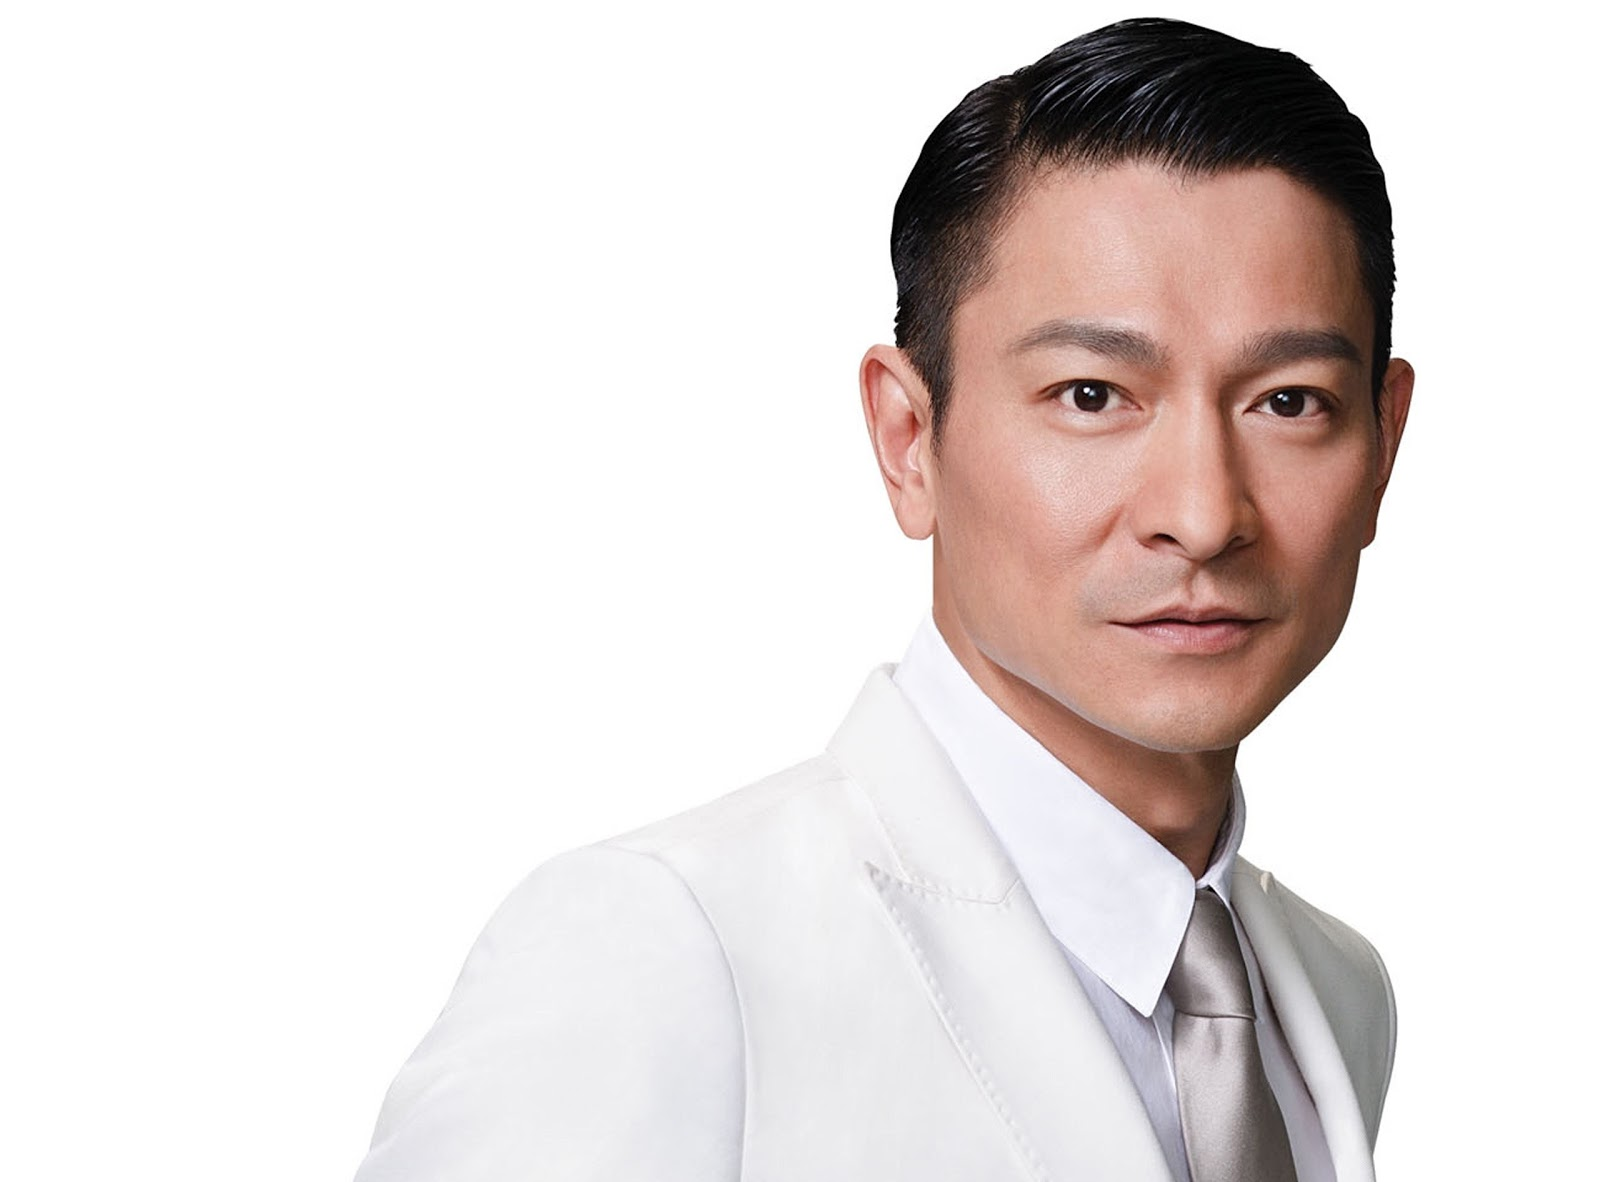 Andy Lau Phone number, Email Id, Fanmail, Instagram, Tiktok, and Contact Details